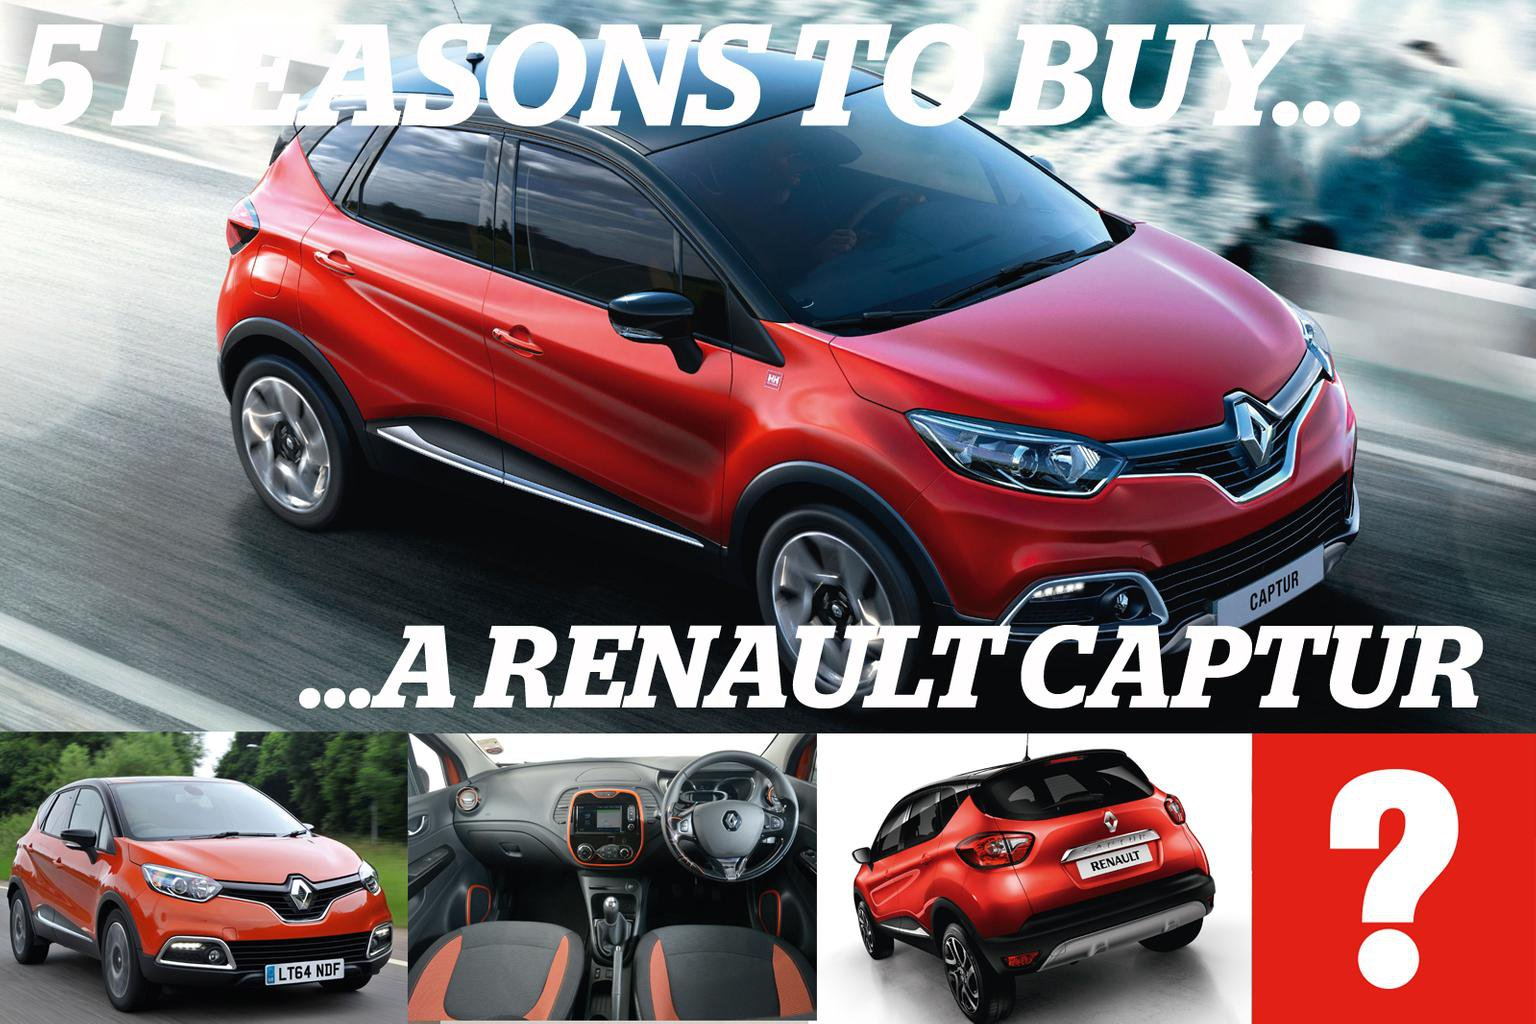 5 reasons to buy a Renault Captur